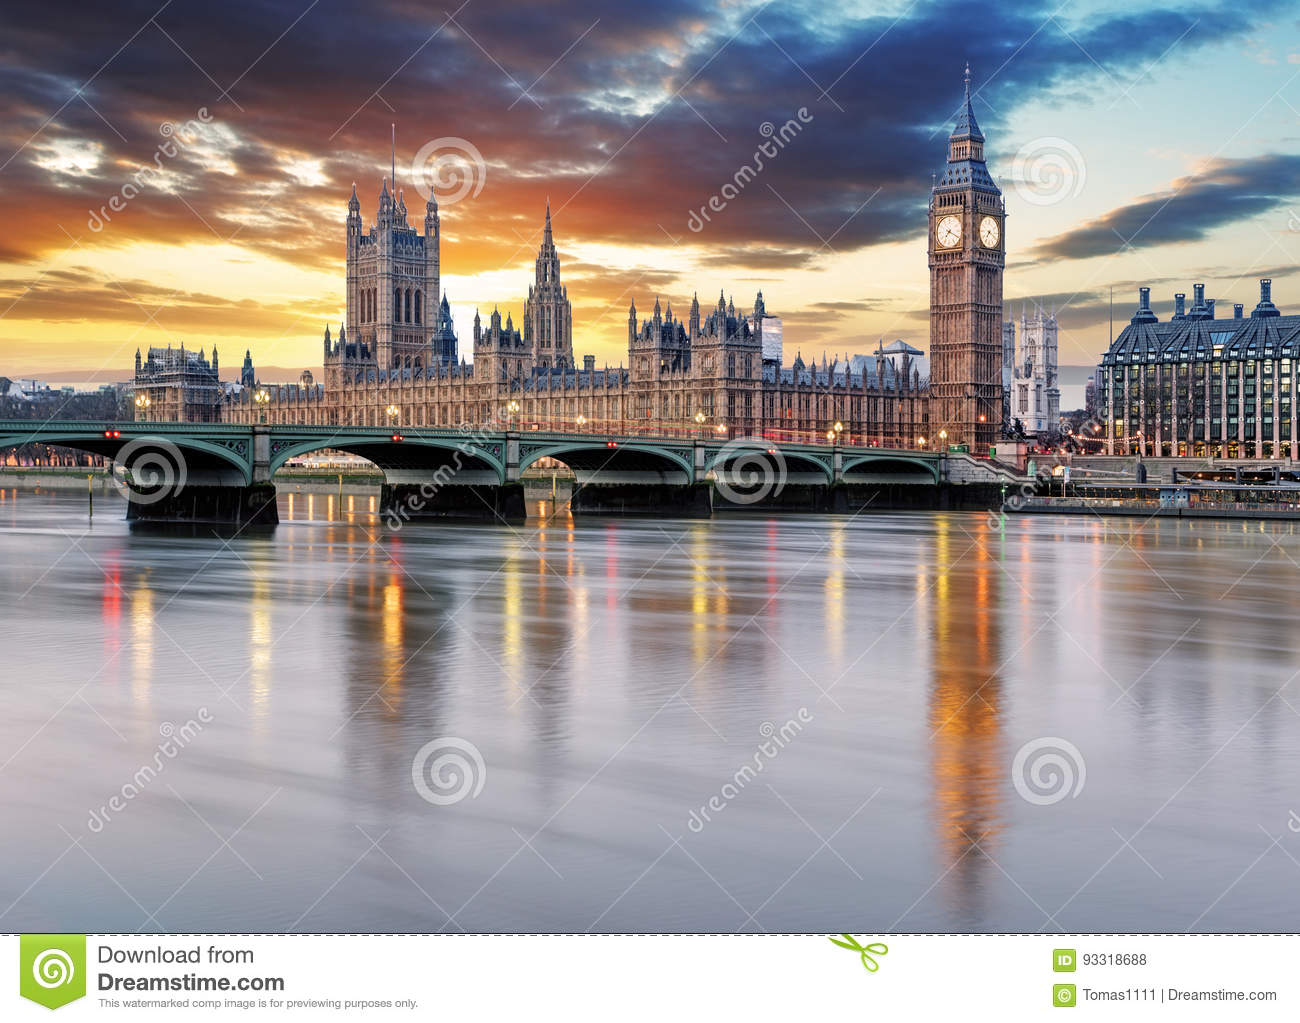 Londyn - big ben i domy parlament UK,